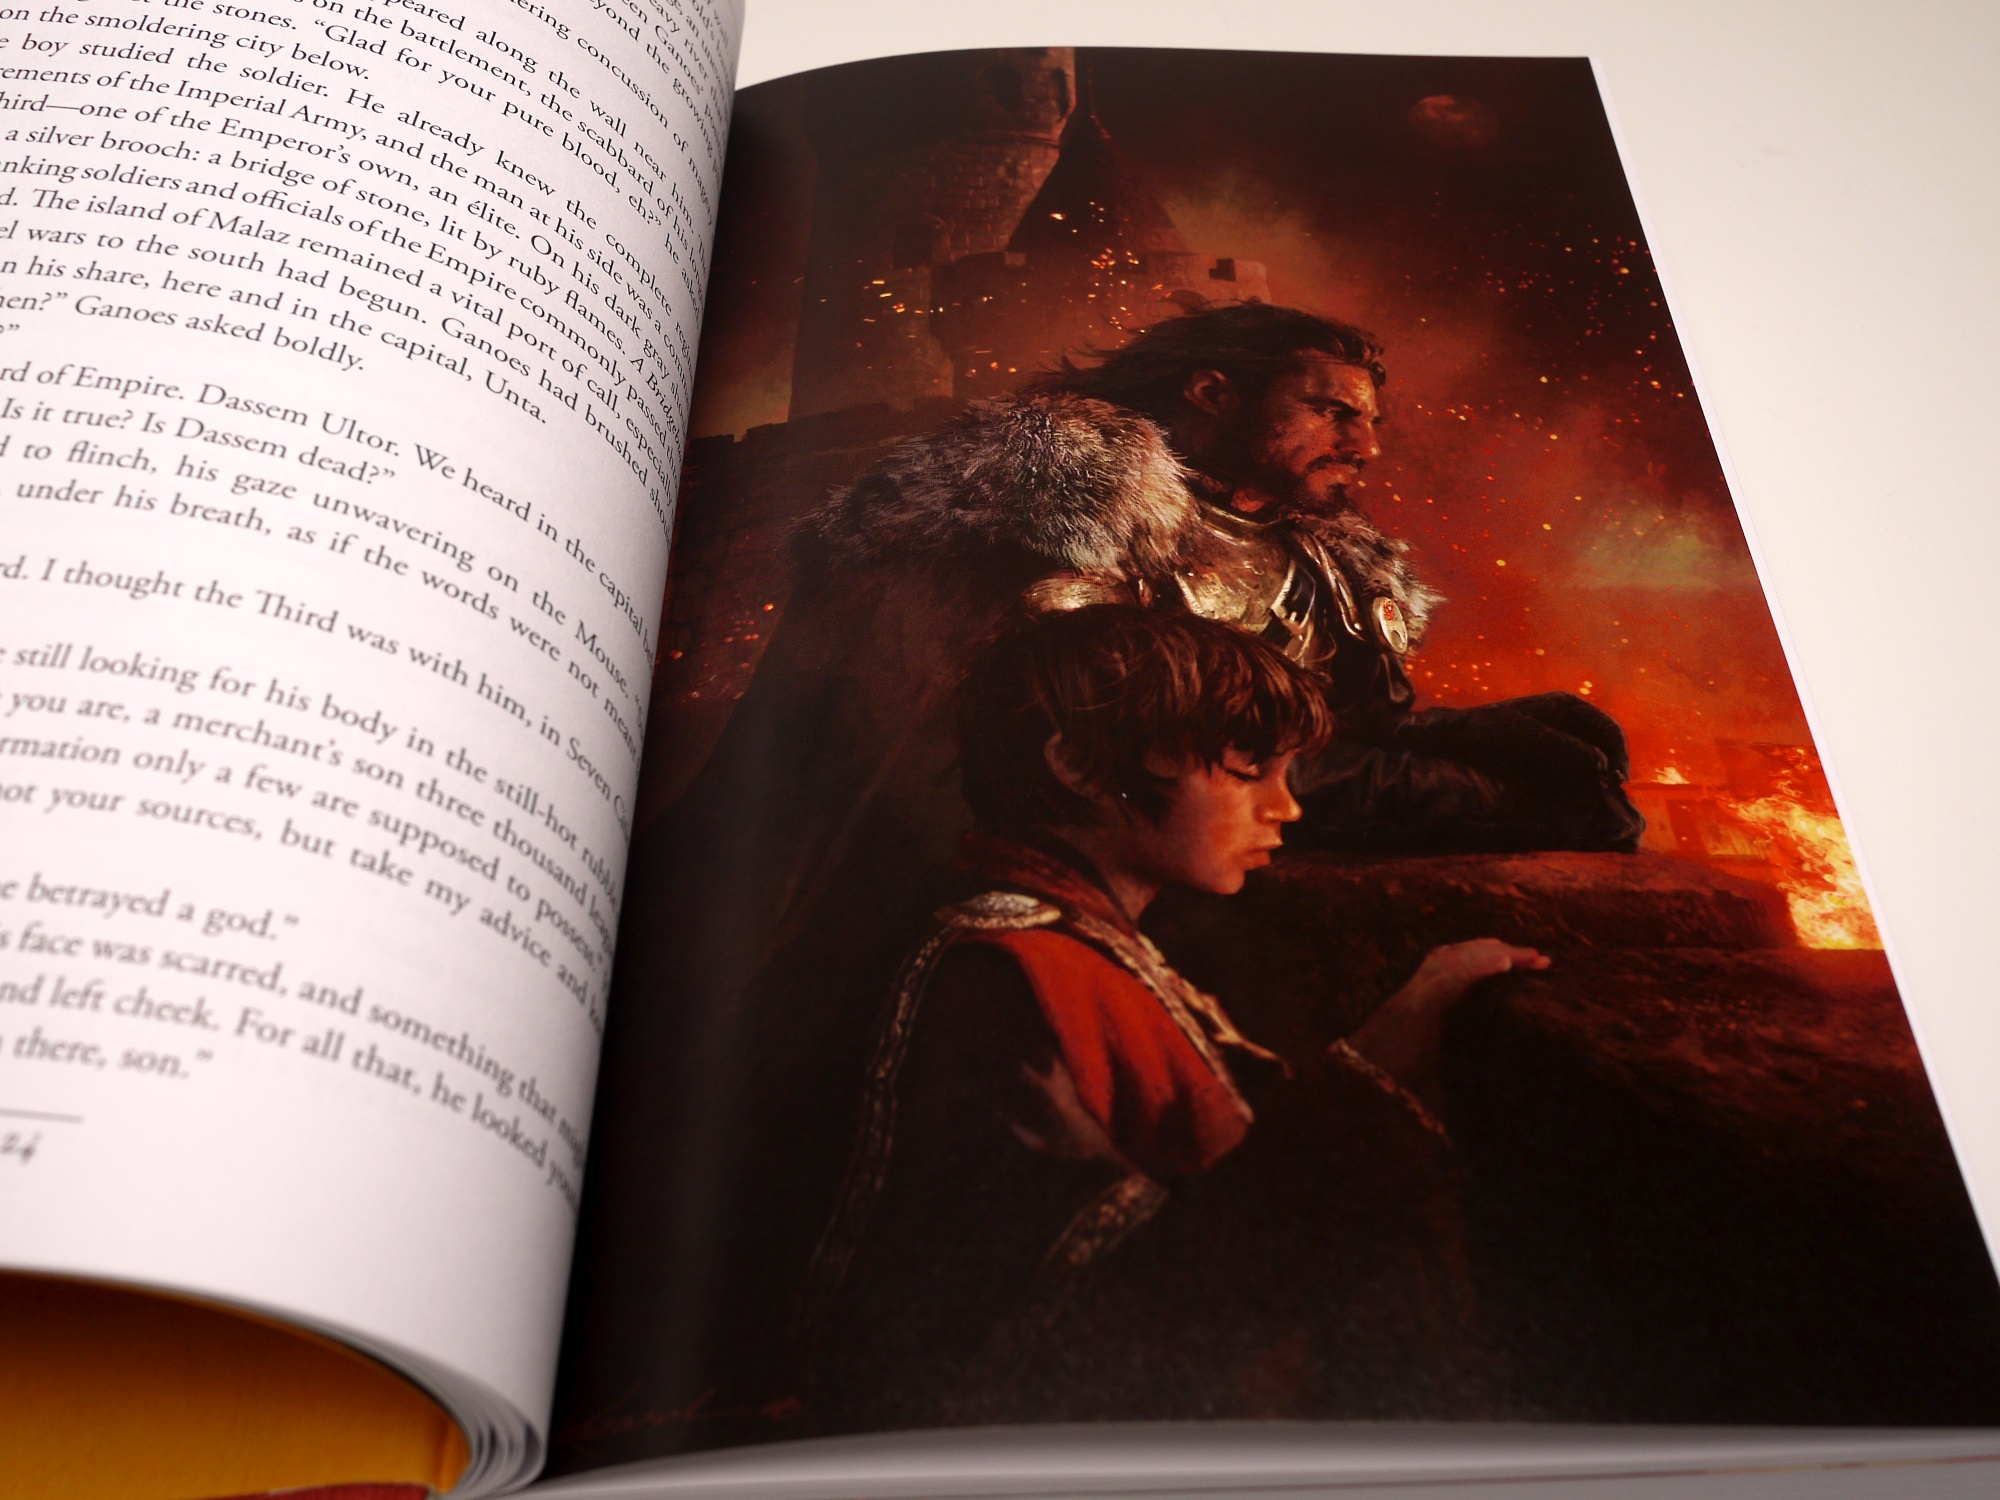 Gardens Of The Moon By Steven Erikson (2009) Illustration #1: Young Ganoes